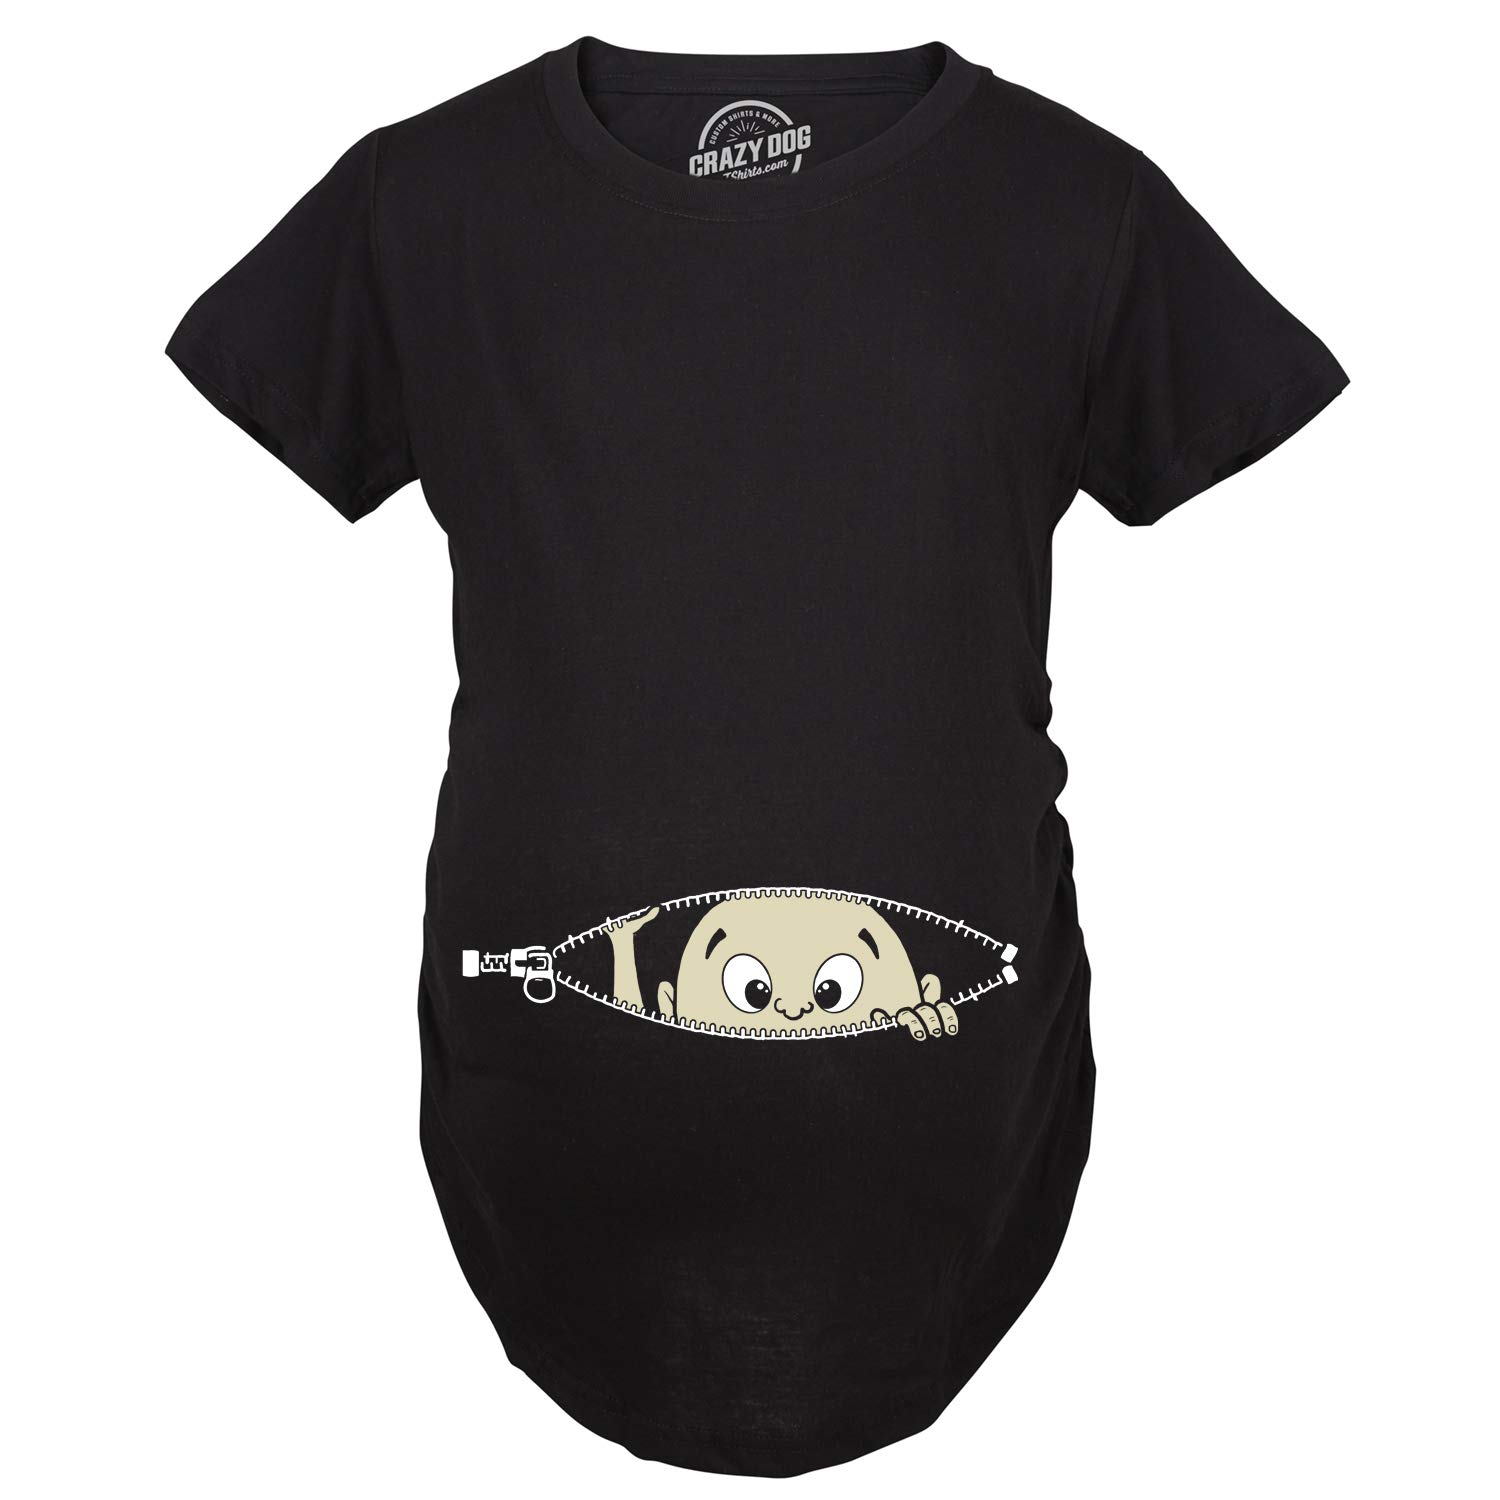 d0a4ce7960c93 Maternity Baby Peeking T Shirt Funny Pregnancy Tee for Expecting Mothers:  Amazon.co.uk: Clothing